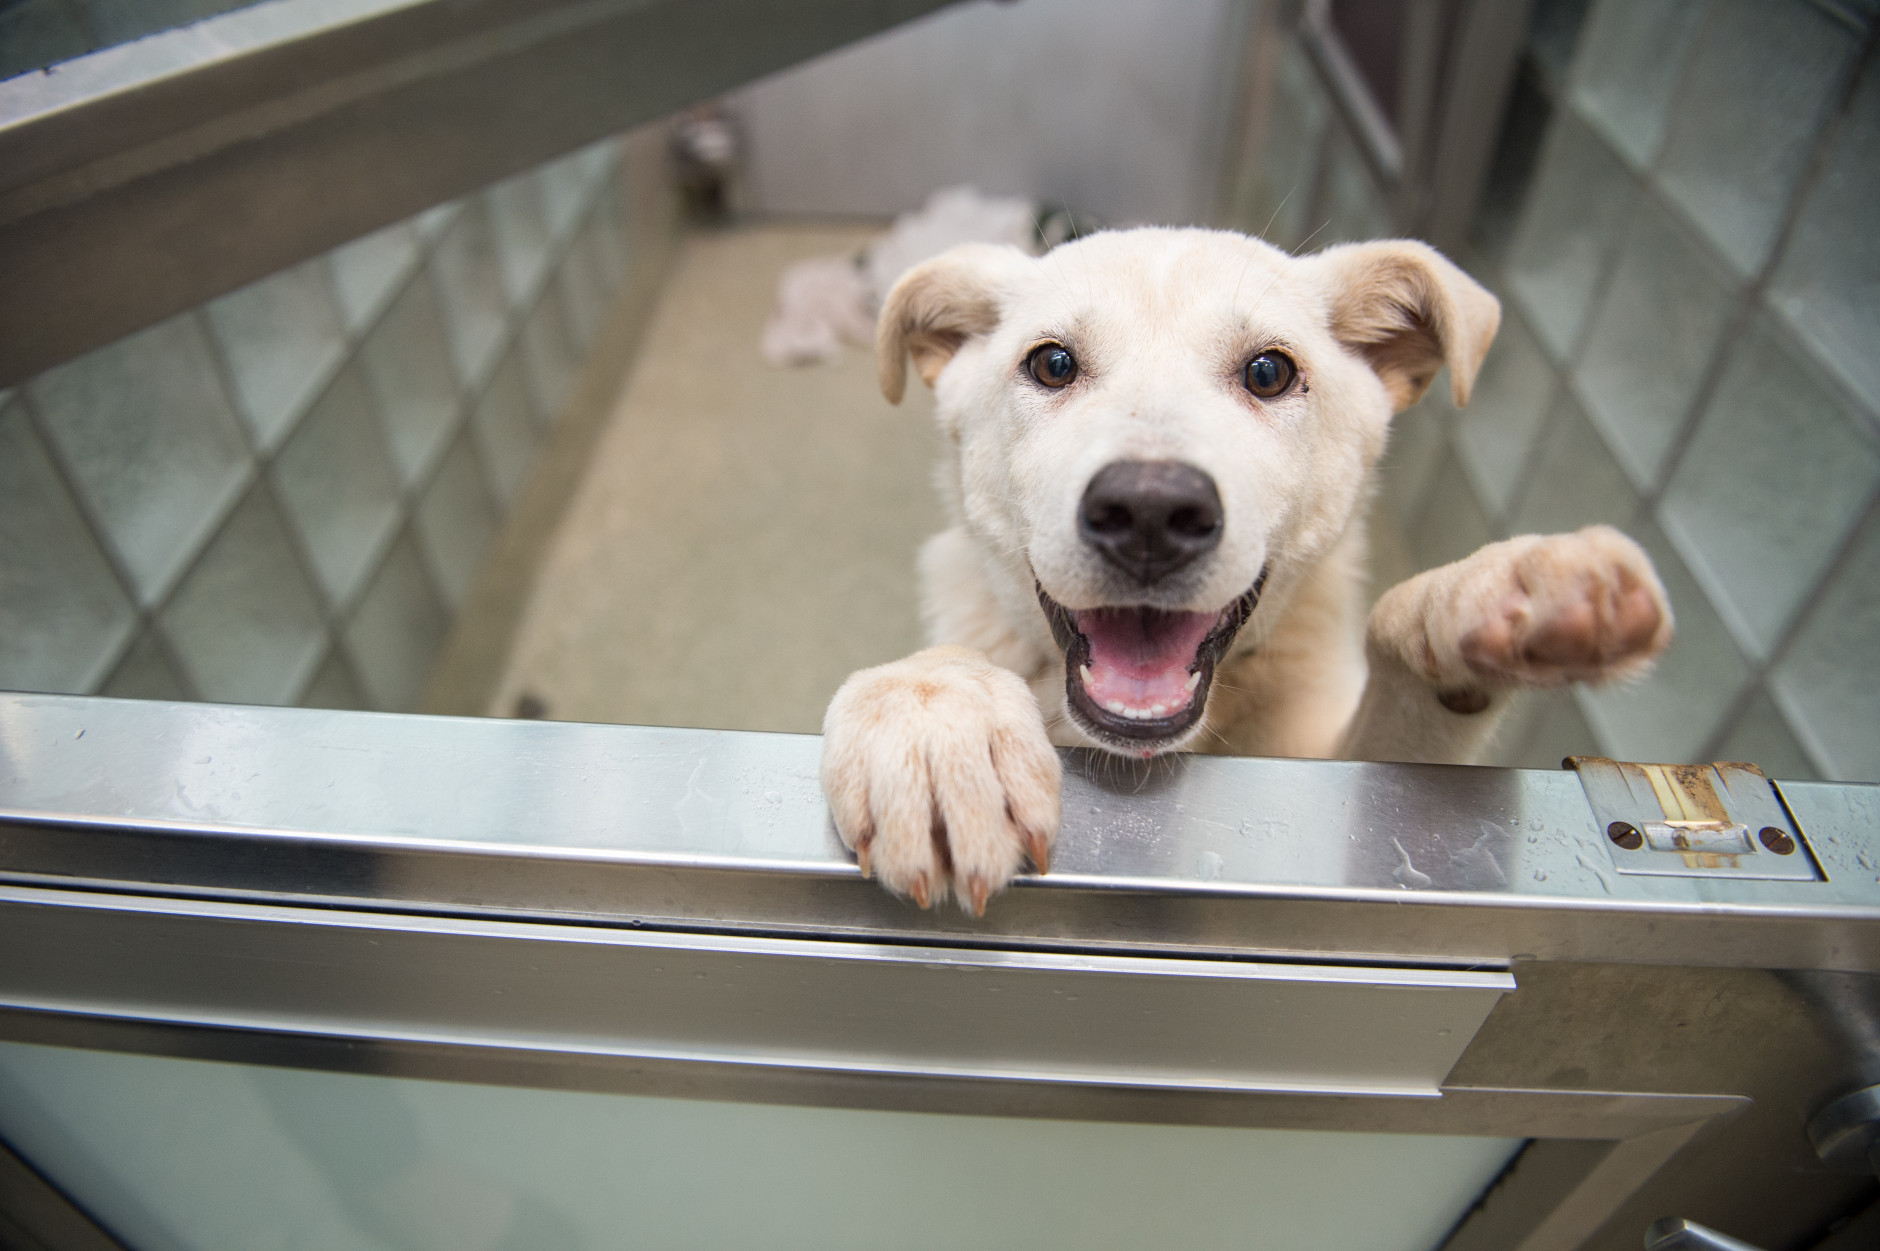 Dogs that arrived over the weekend from a dog meat farm in South Korea are picked up at the Washington Animal Rescue League by area shelters.  Here, Vixen awaits transport to a new shelter. (Courtesy Meredith Lee/The HSUS)